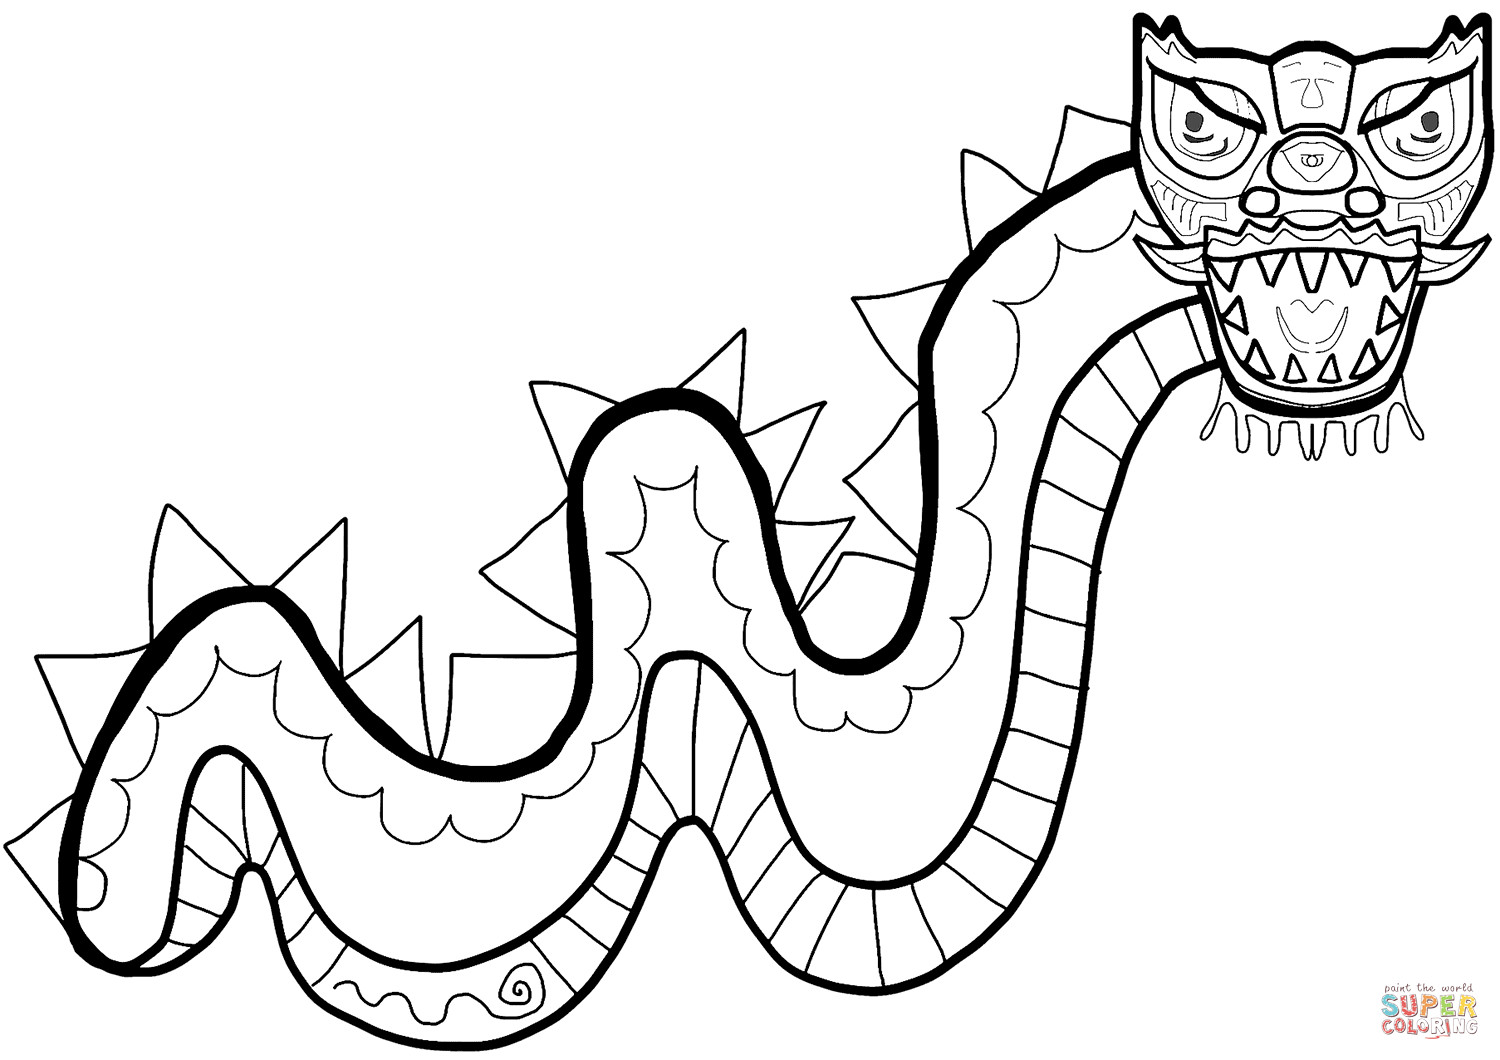 Best ideas about Chinese Dragon Free Printable Coloring Sheets . Save or Pin Chinese New Year Dragon coloring page Now.